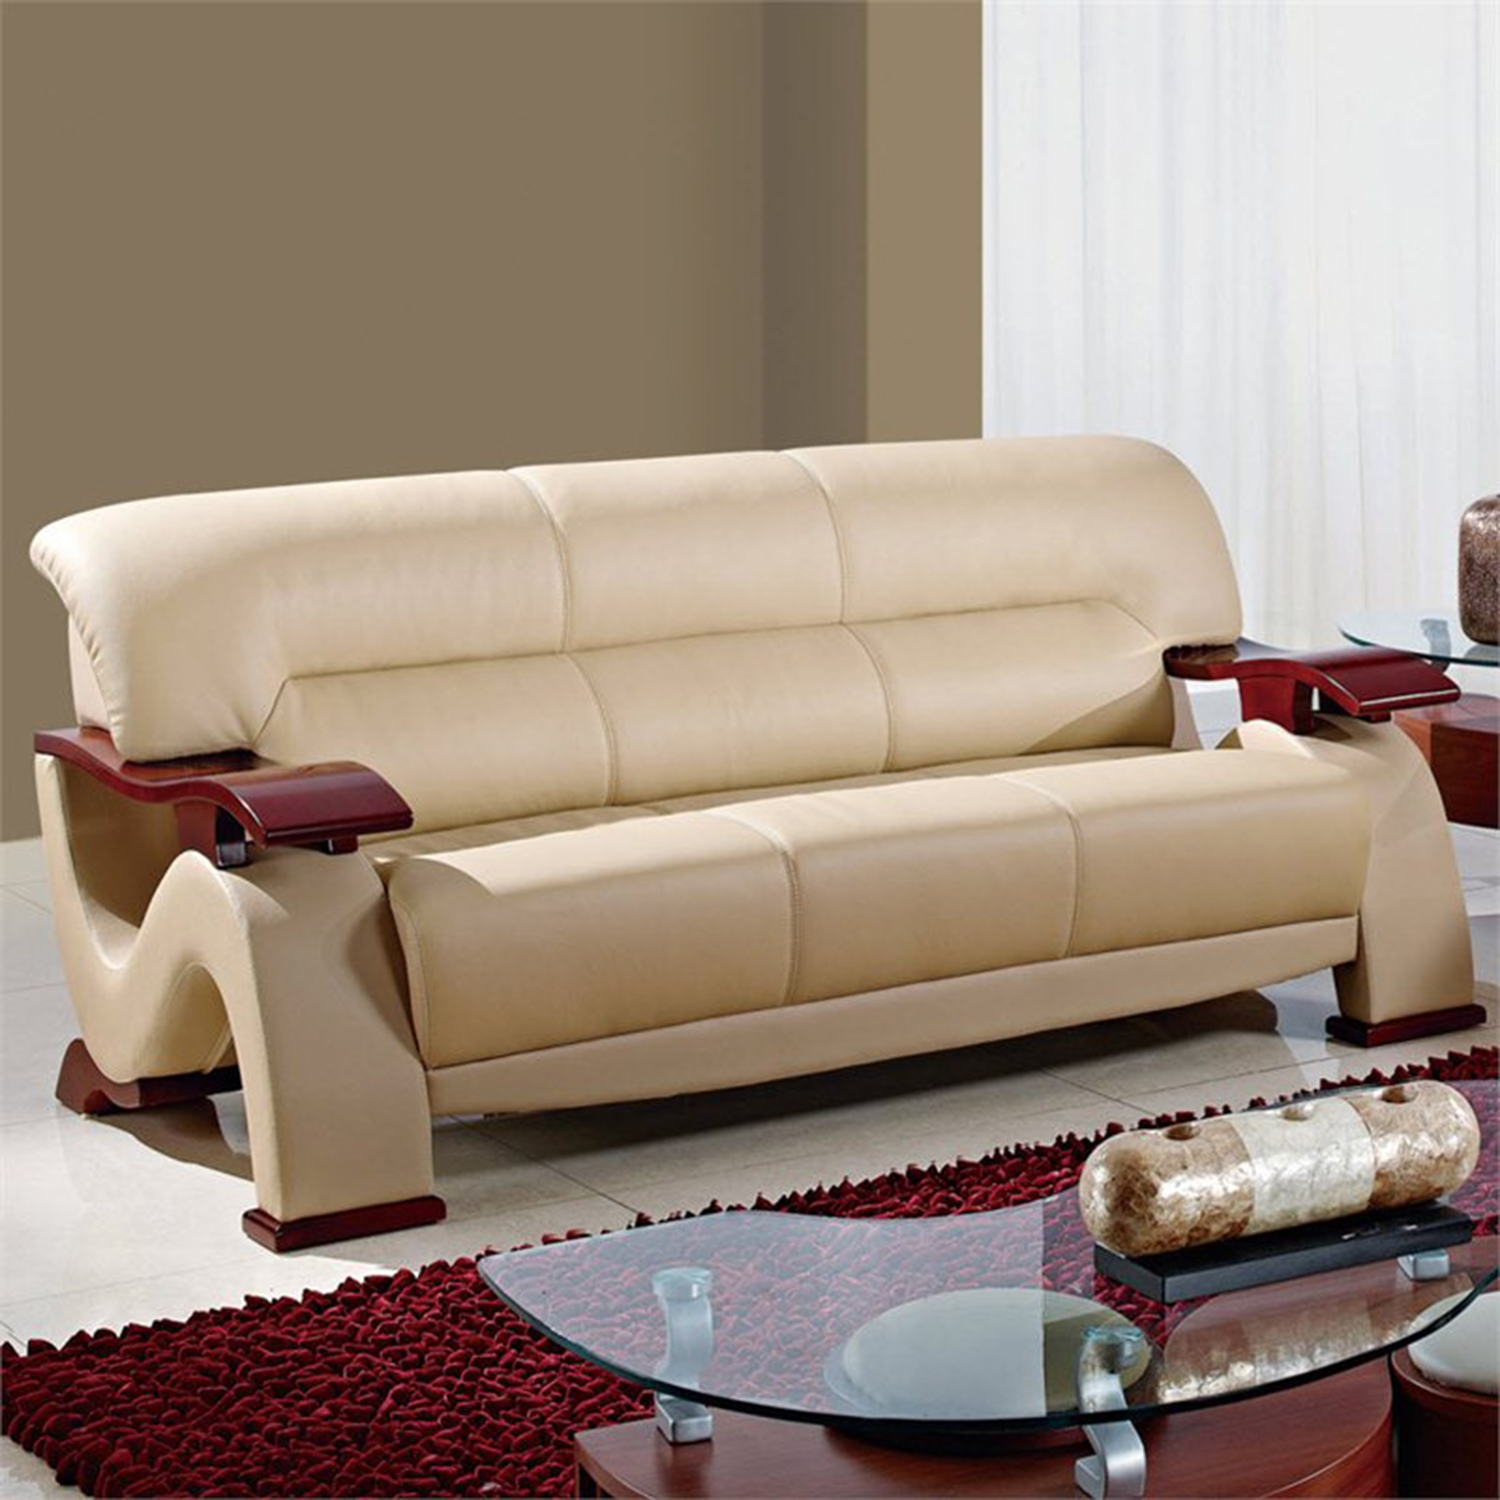 Valerie Bonded Leather Sofa Set in Cappuccino Upholstery with Mahogany Legs - GLO-U2033-RV-CAP-SET